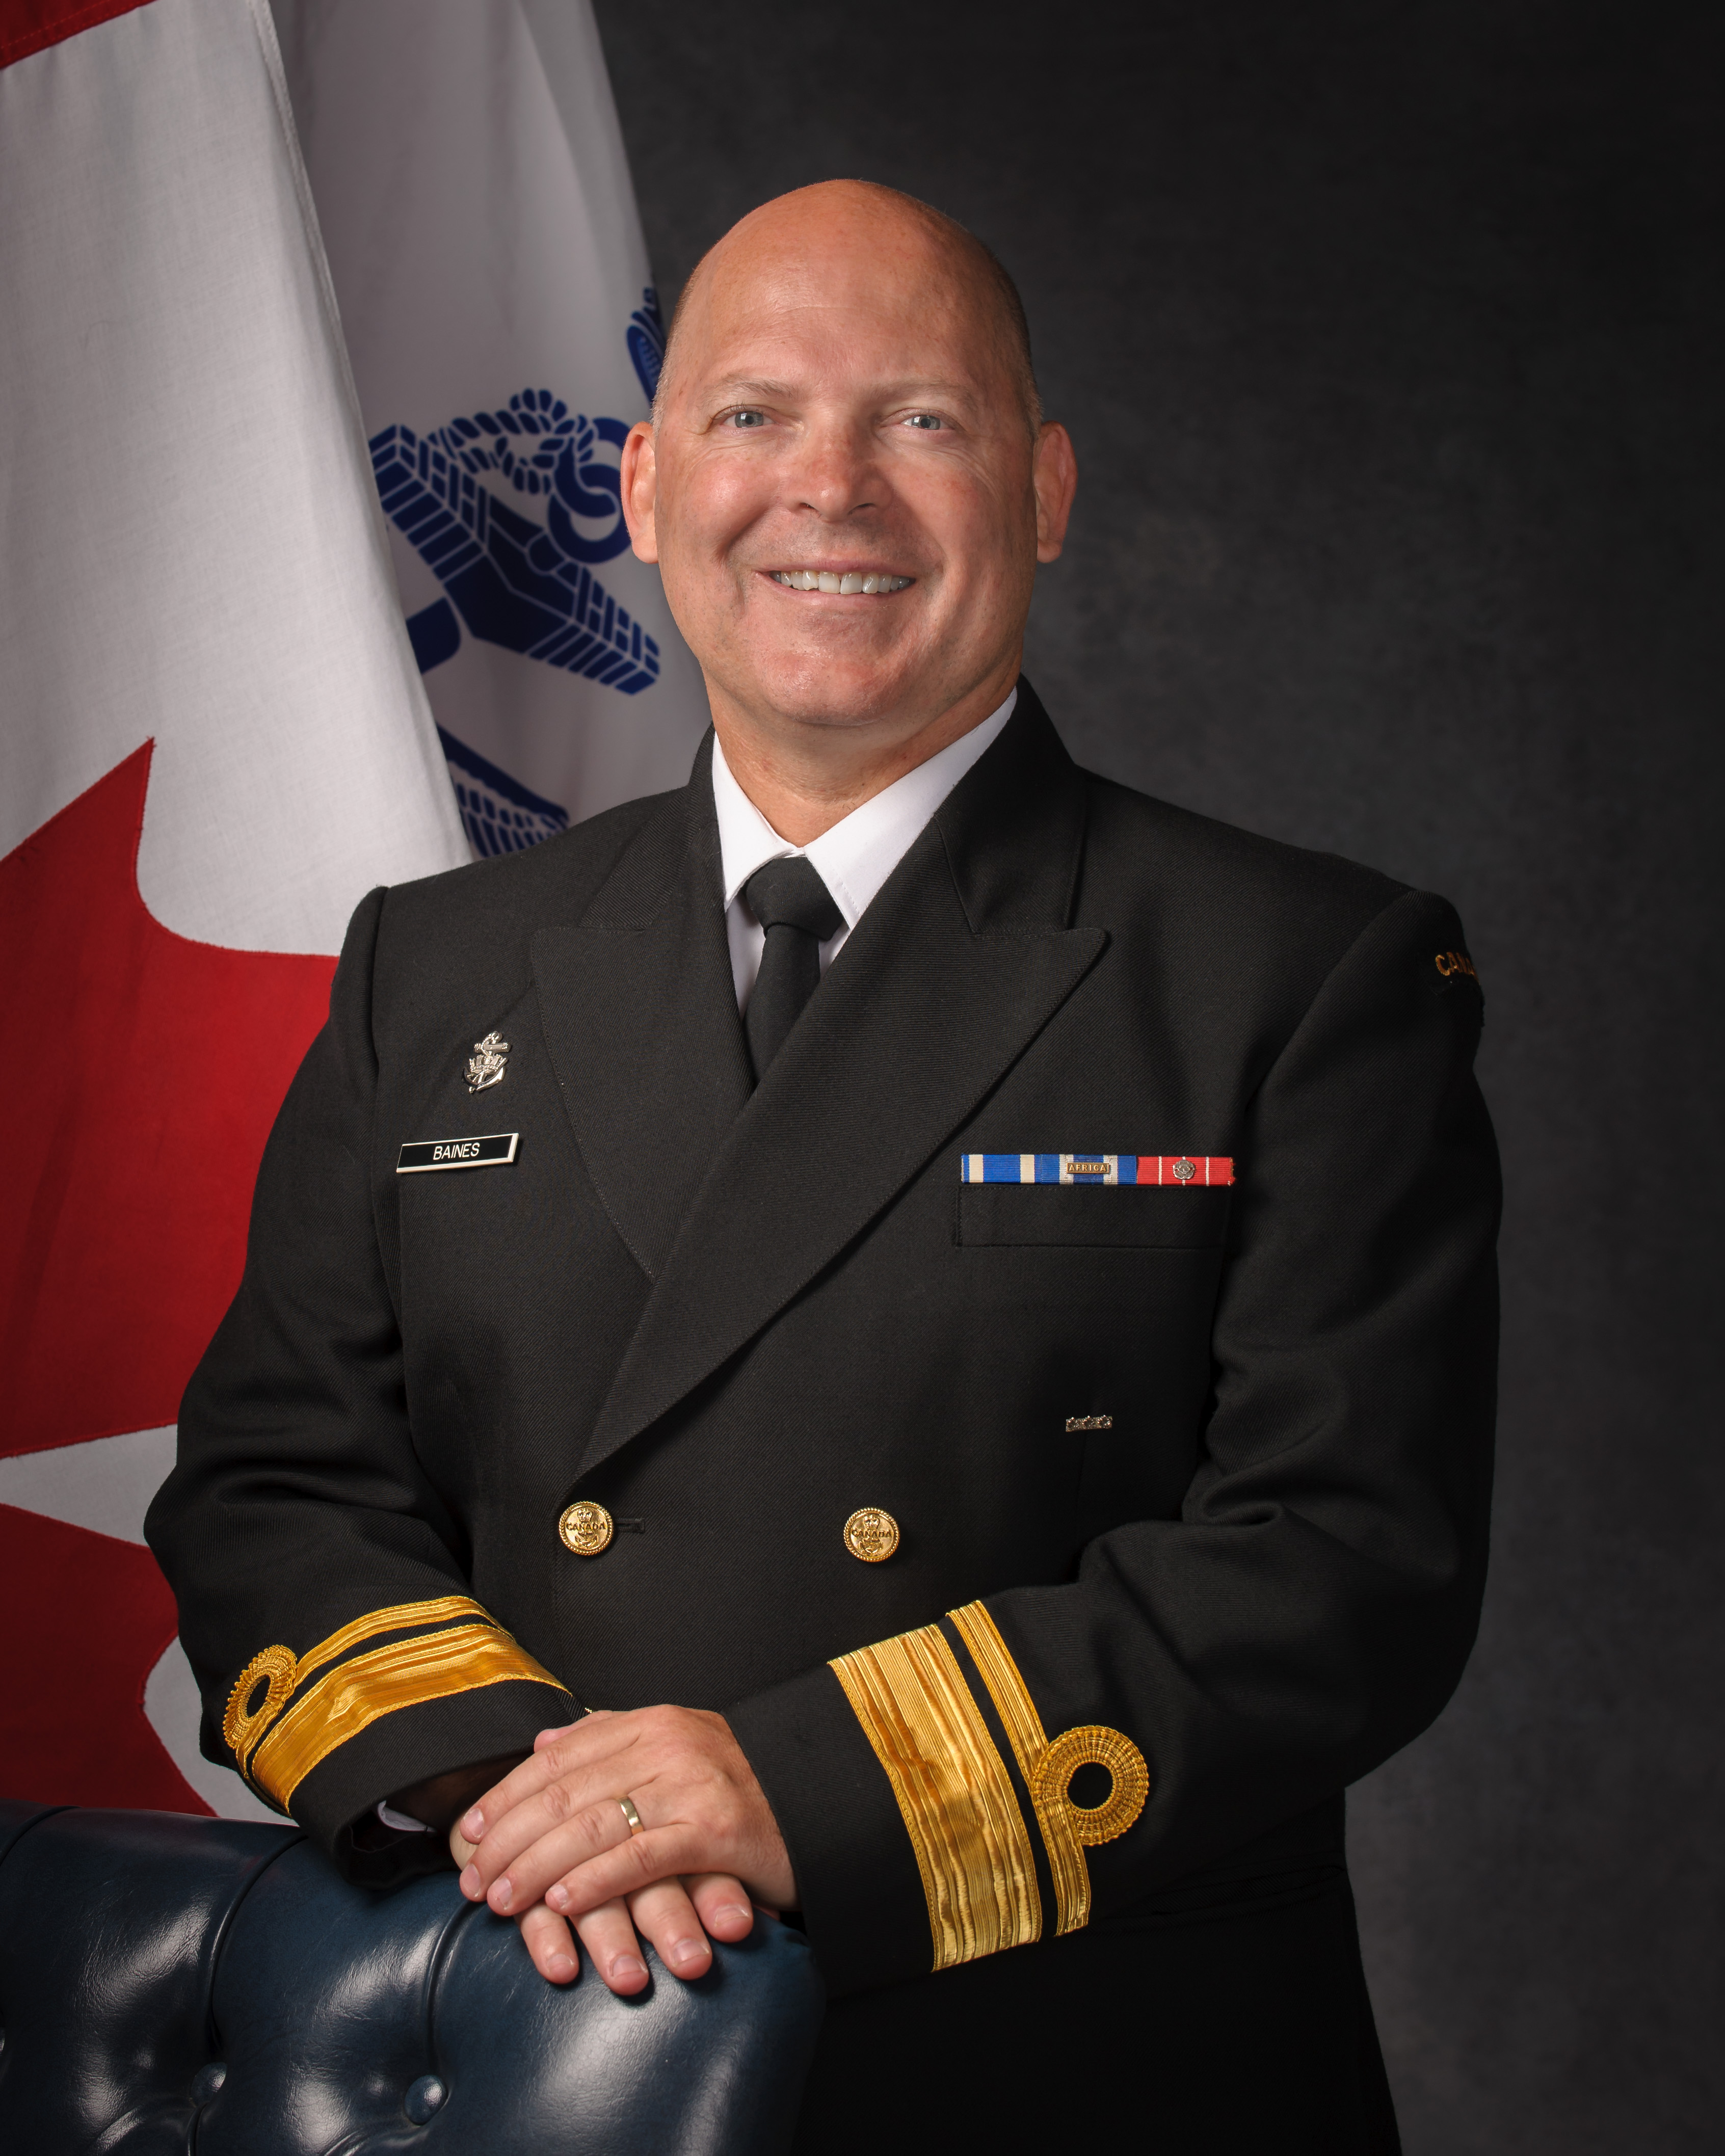 Rear-Admiral Craig Baines, MSC, CD